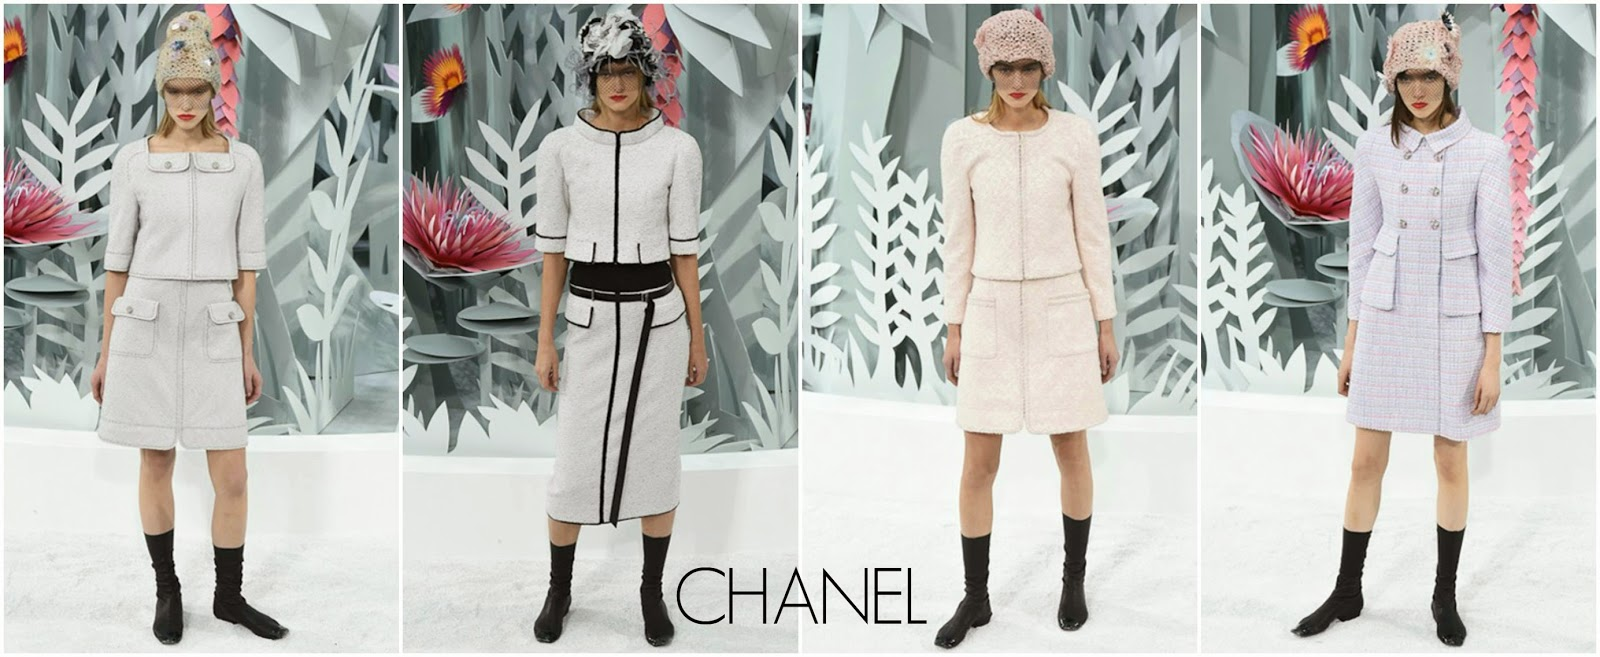 Chanel SS15 Couture show, Paris, catwalk, runway report, designer, fashion week